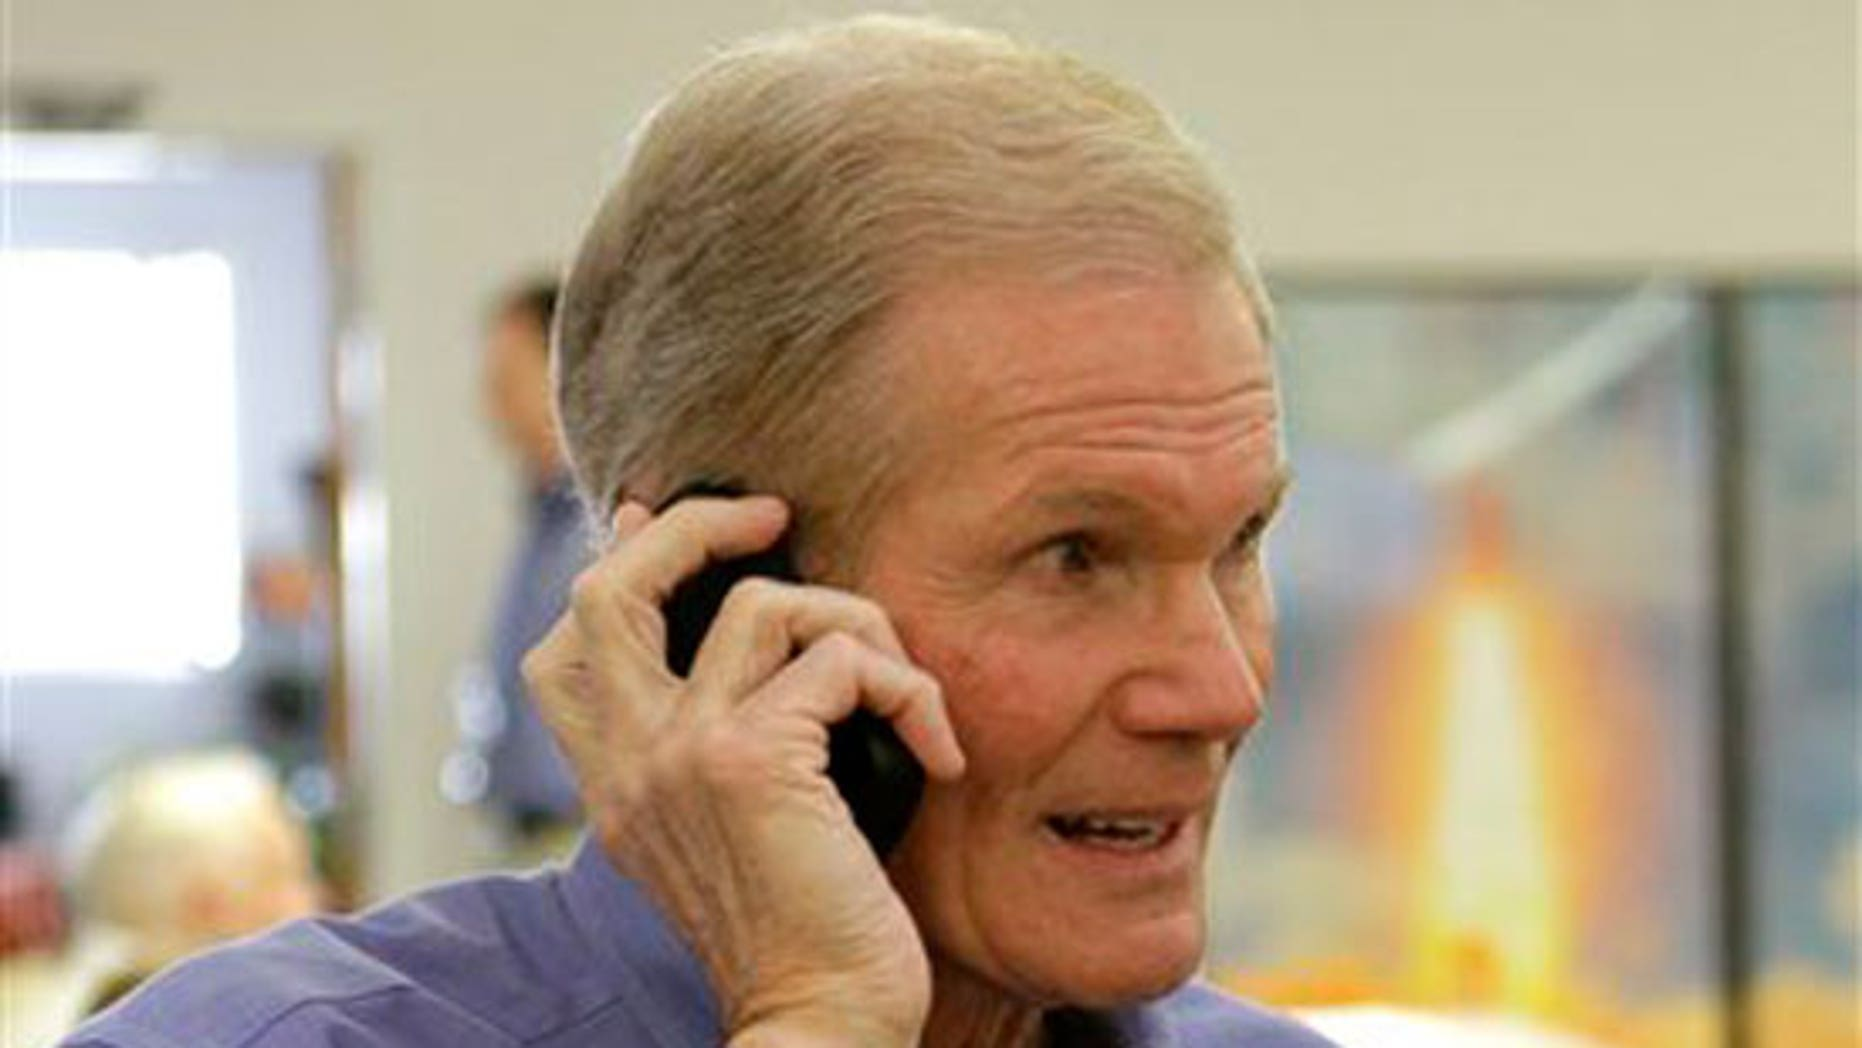 Sen. Bill Nelson, D-Fla., talks on his cell phone at the Kennedy Space Center press building prior to the launch of space shuttle Discovery in Cape Canaveral, Fla., Thursday, Feb. 24, 2011.(AP)